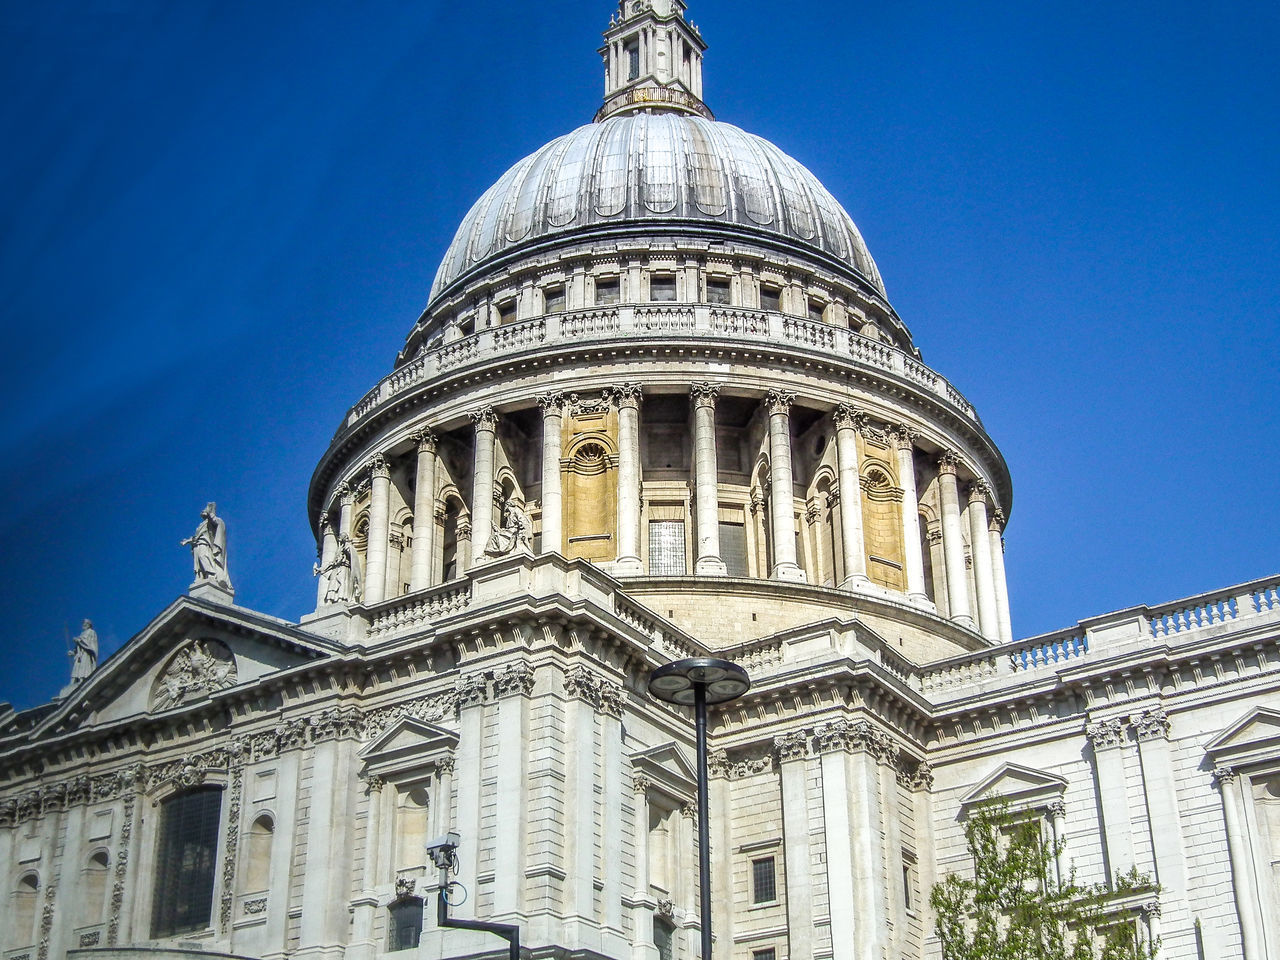 Architecture Building Exterior Built Structure City Day Dome England Gran Bretagna Great Britain Großbritannien Inghilterra London Londra Low Angle View No People Outdoors Place Of Worship Religion Sky Spirituality Tourism Travel Travel Destinations